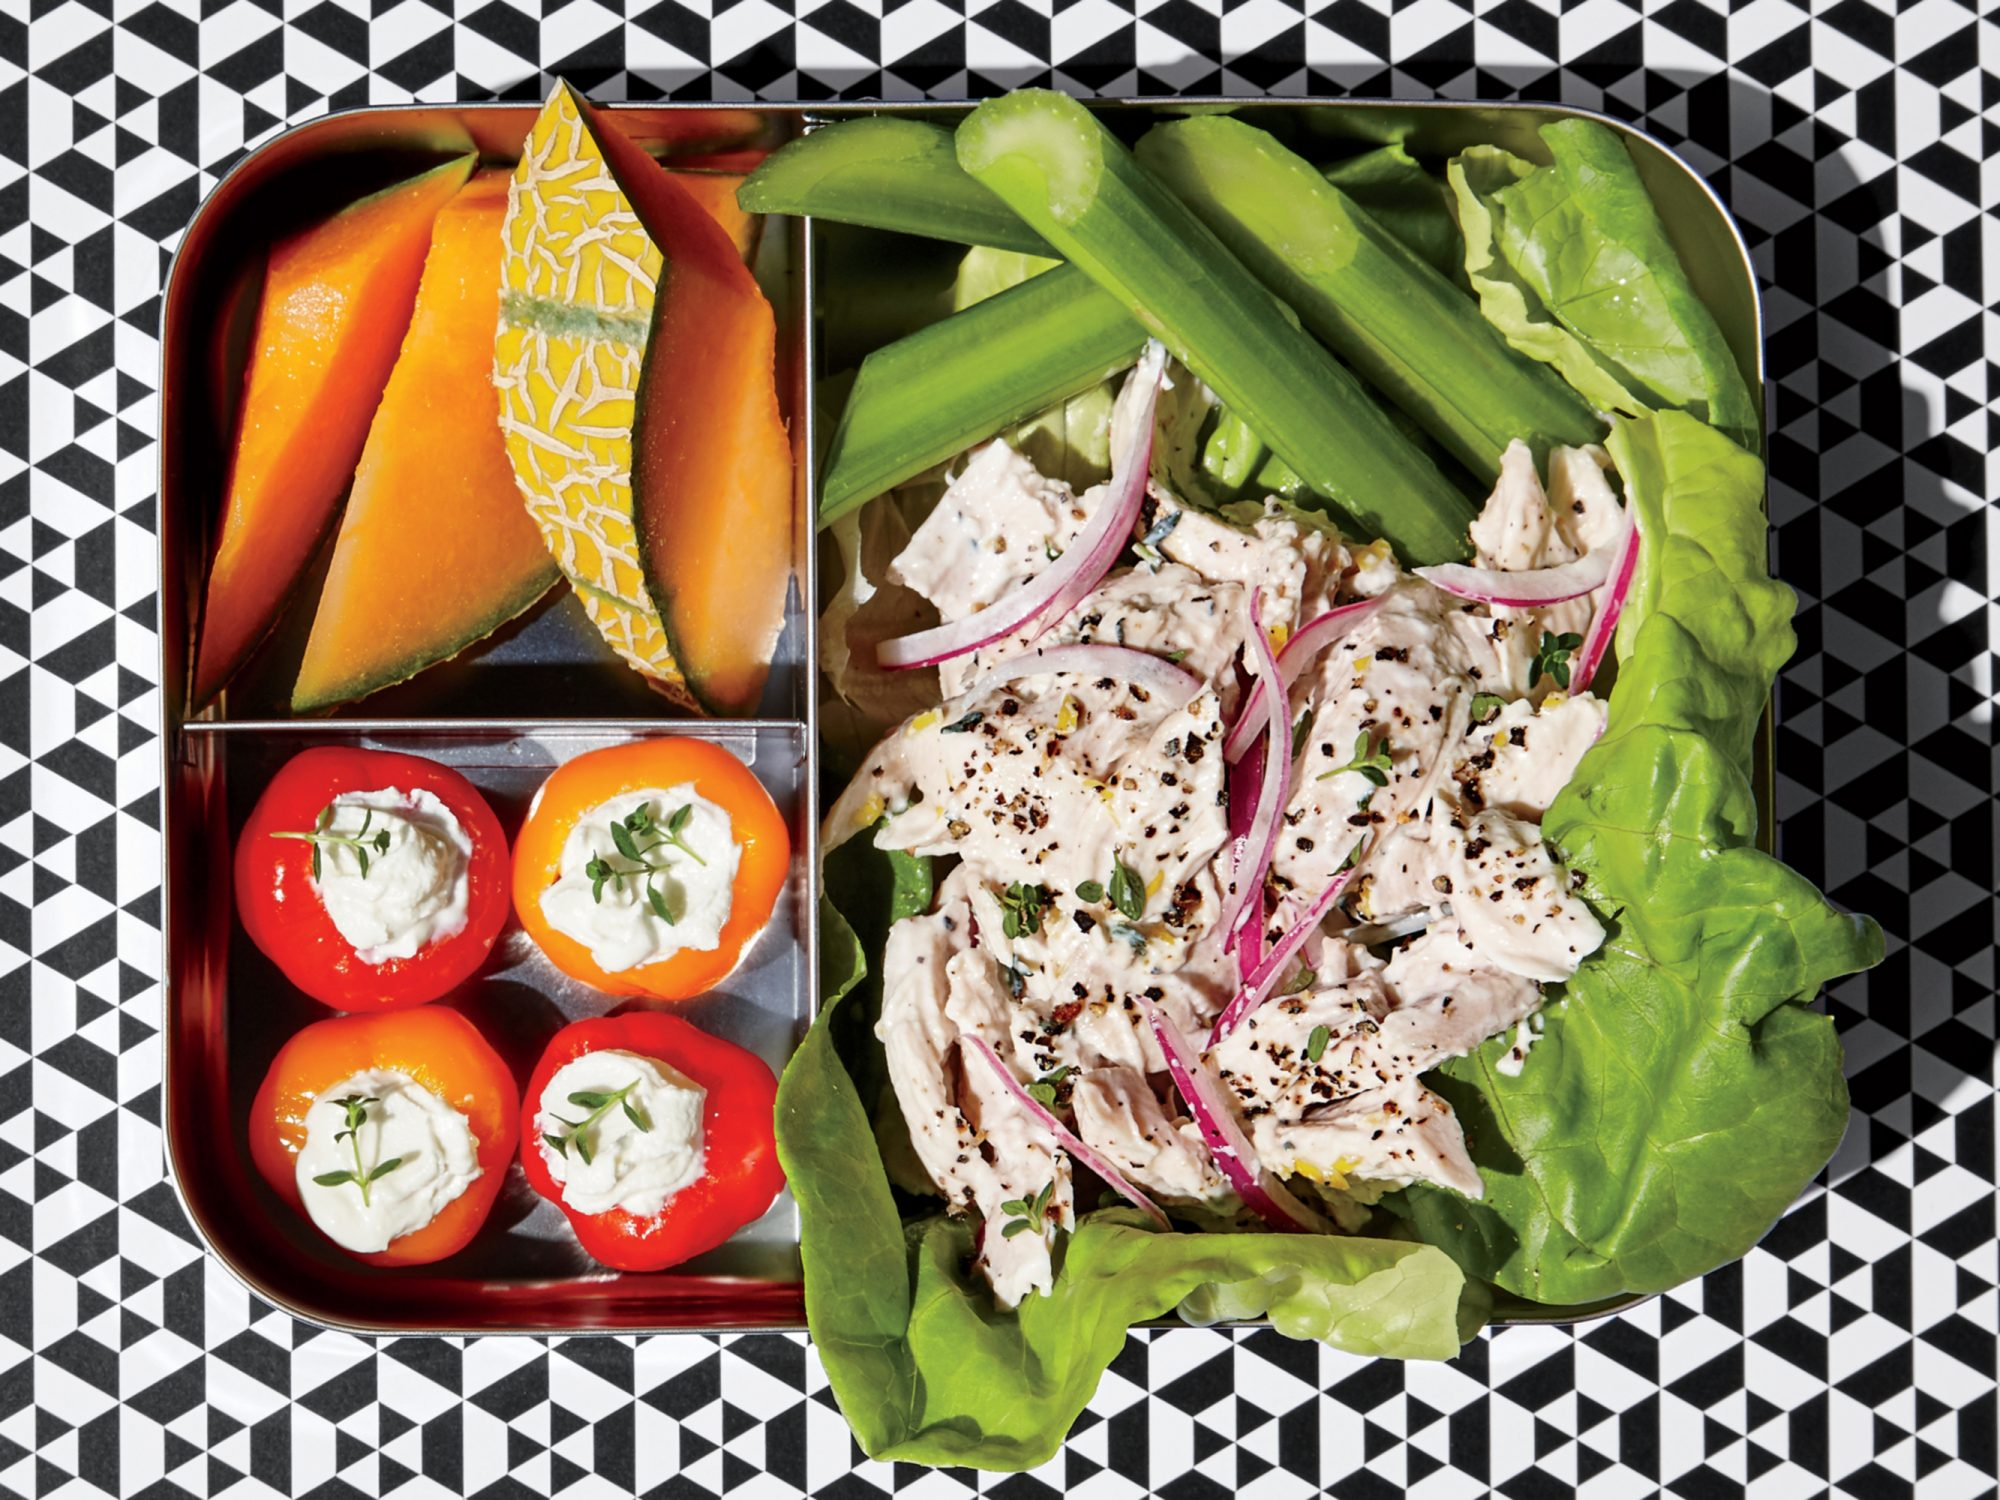 30 Wow-Worthy Packed Lunches To Brighten Up Your Day